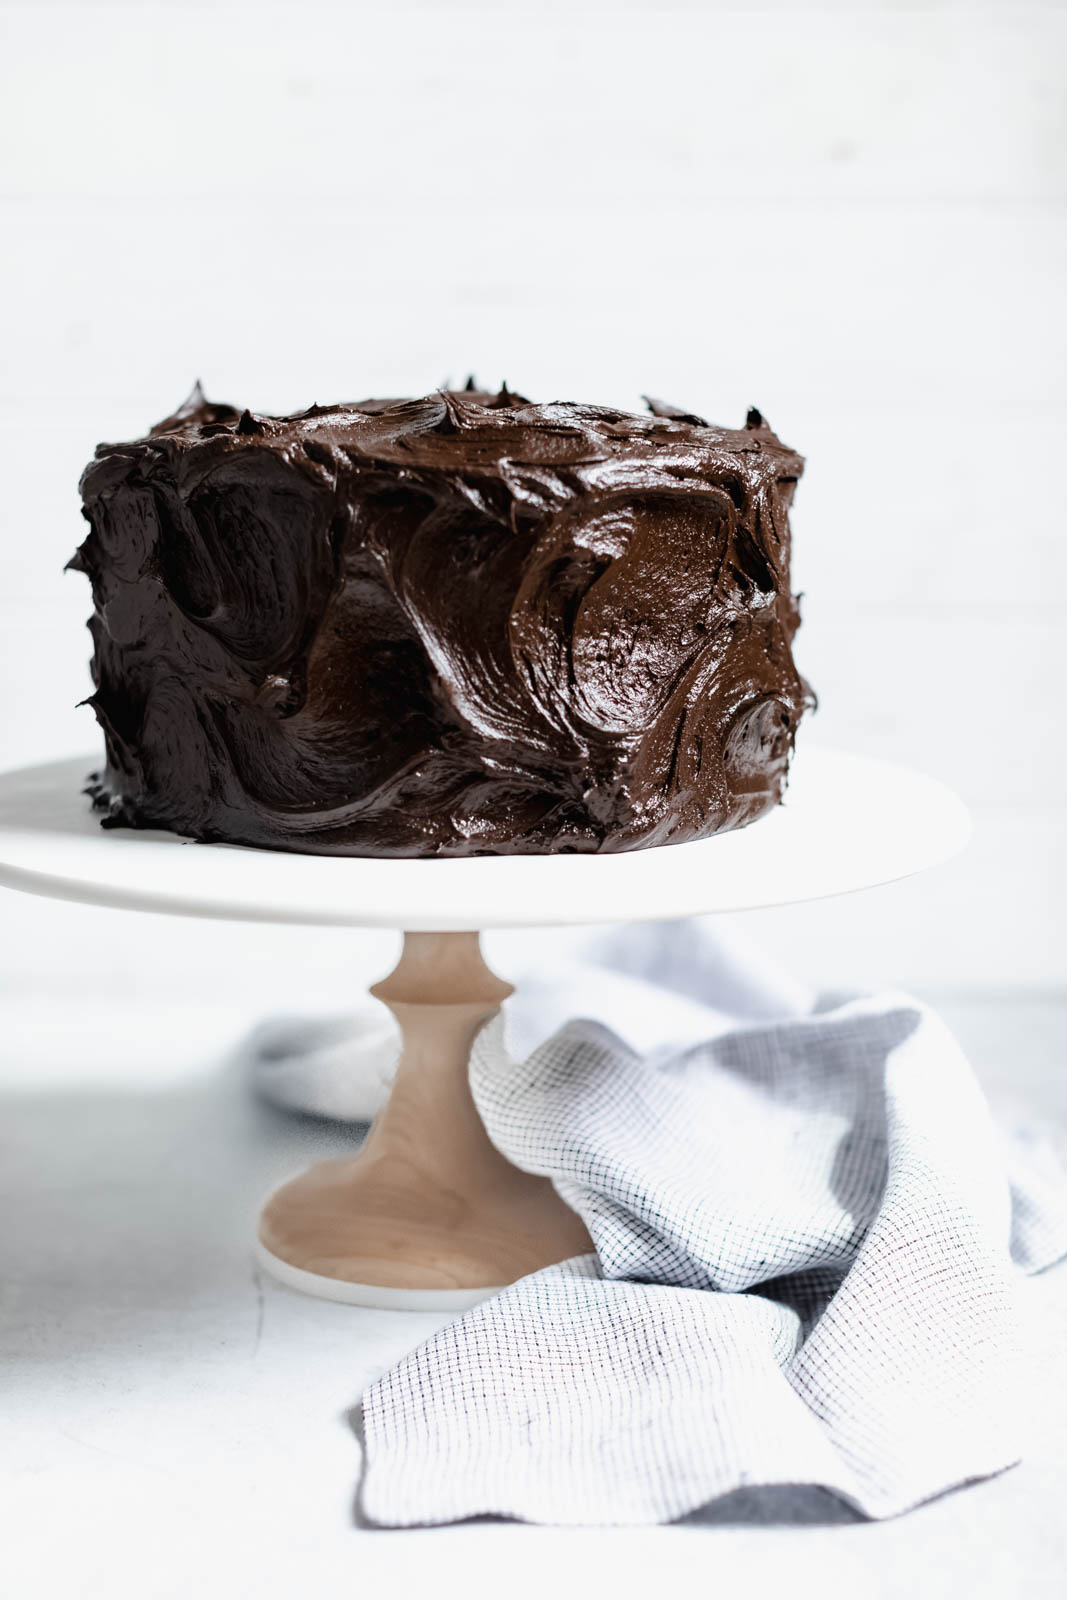 The Chocolate Blackout Cake to end all other chocolate cakes. Aka a moist as heck chocolate cake with a sinful chocolate buttercream frosting.